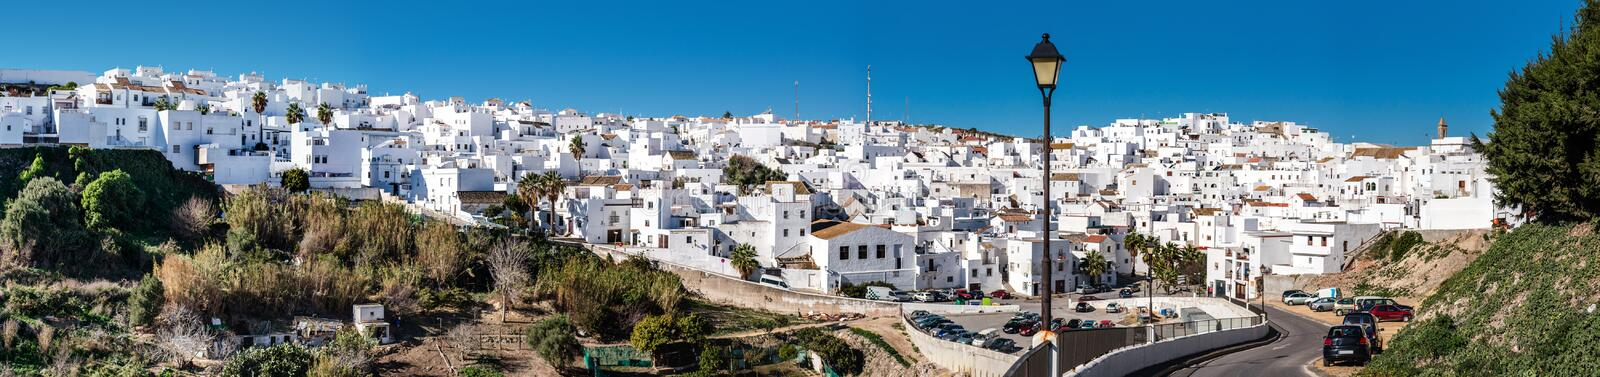 Panorama of Vejer de la Frontera. Costa de la Luz, Spain royalty free stock images